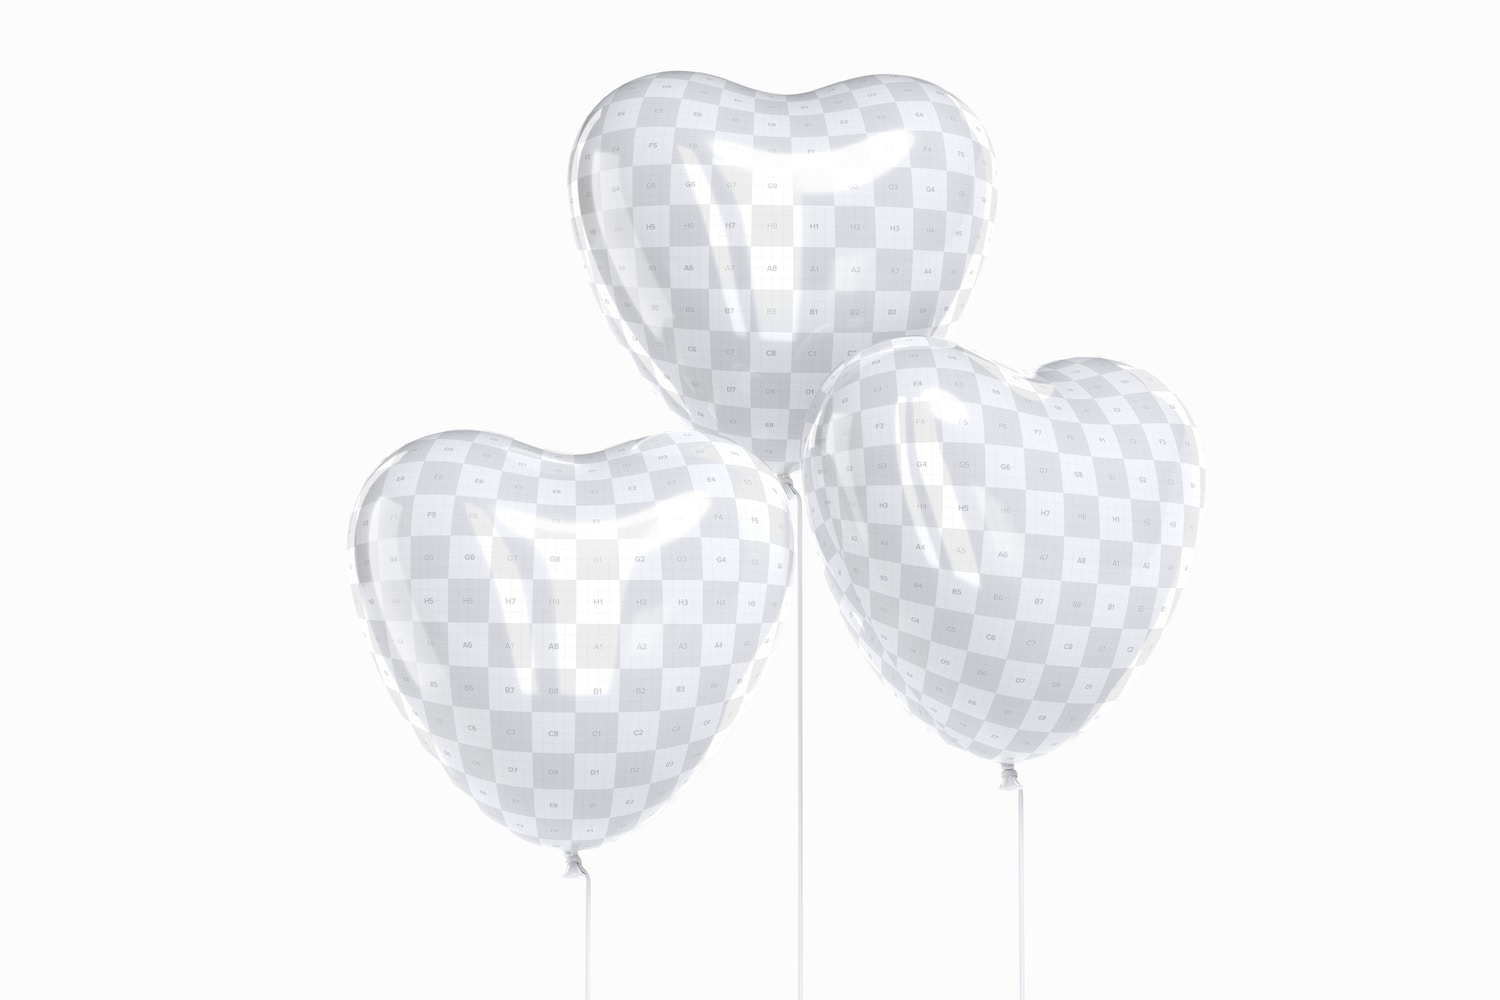 These balloons will look as cool as you want thanks to its Photoshop 3D Layers.